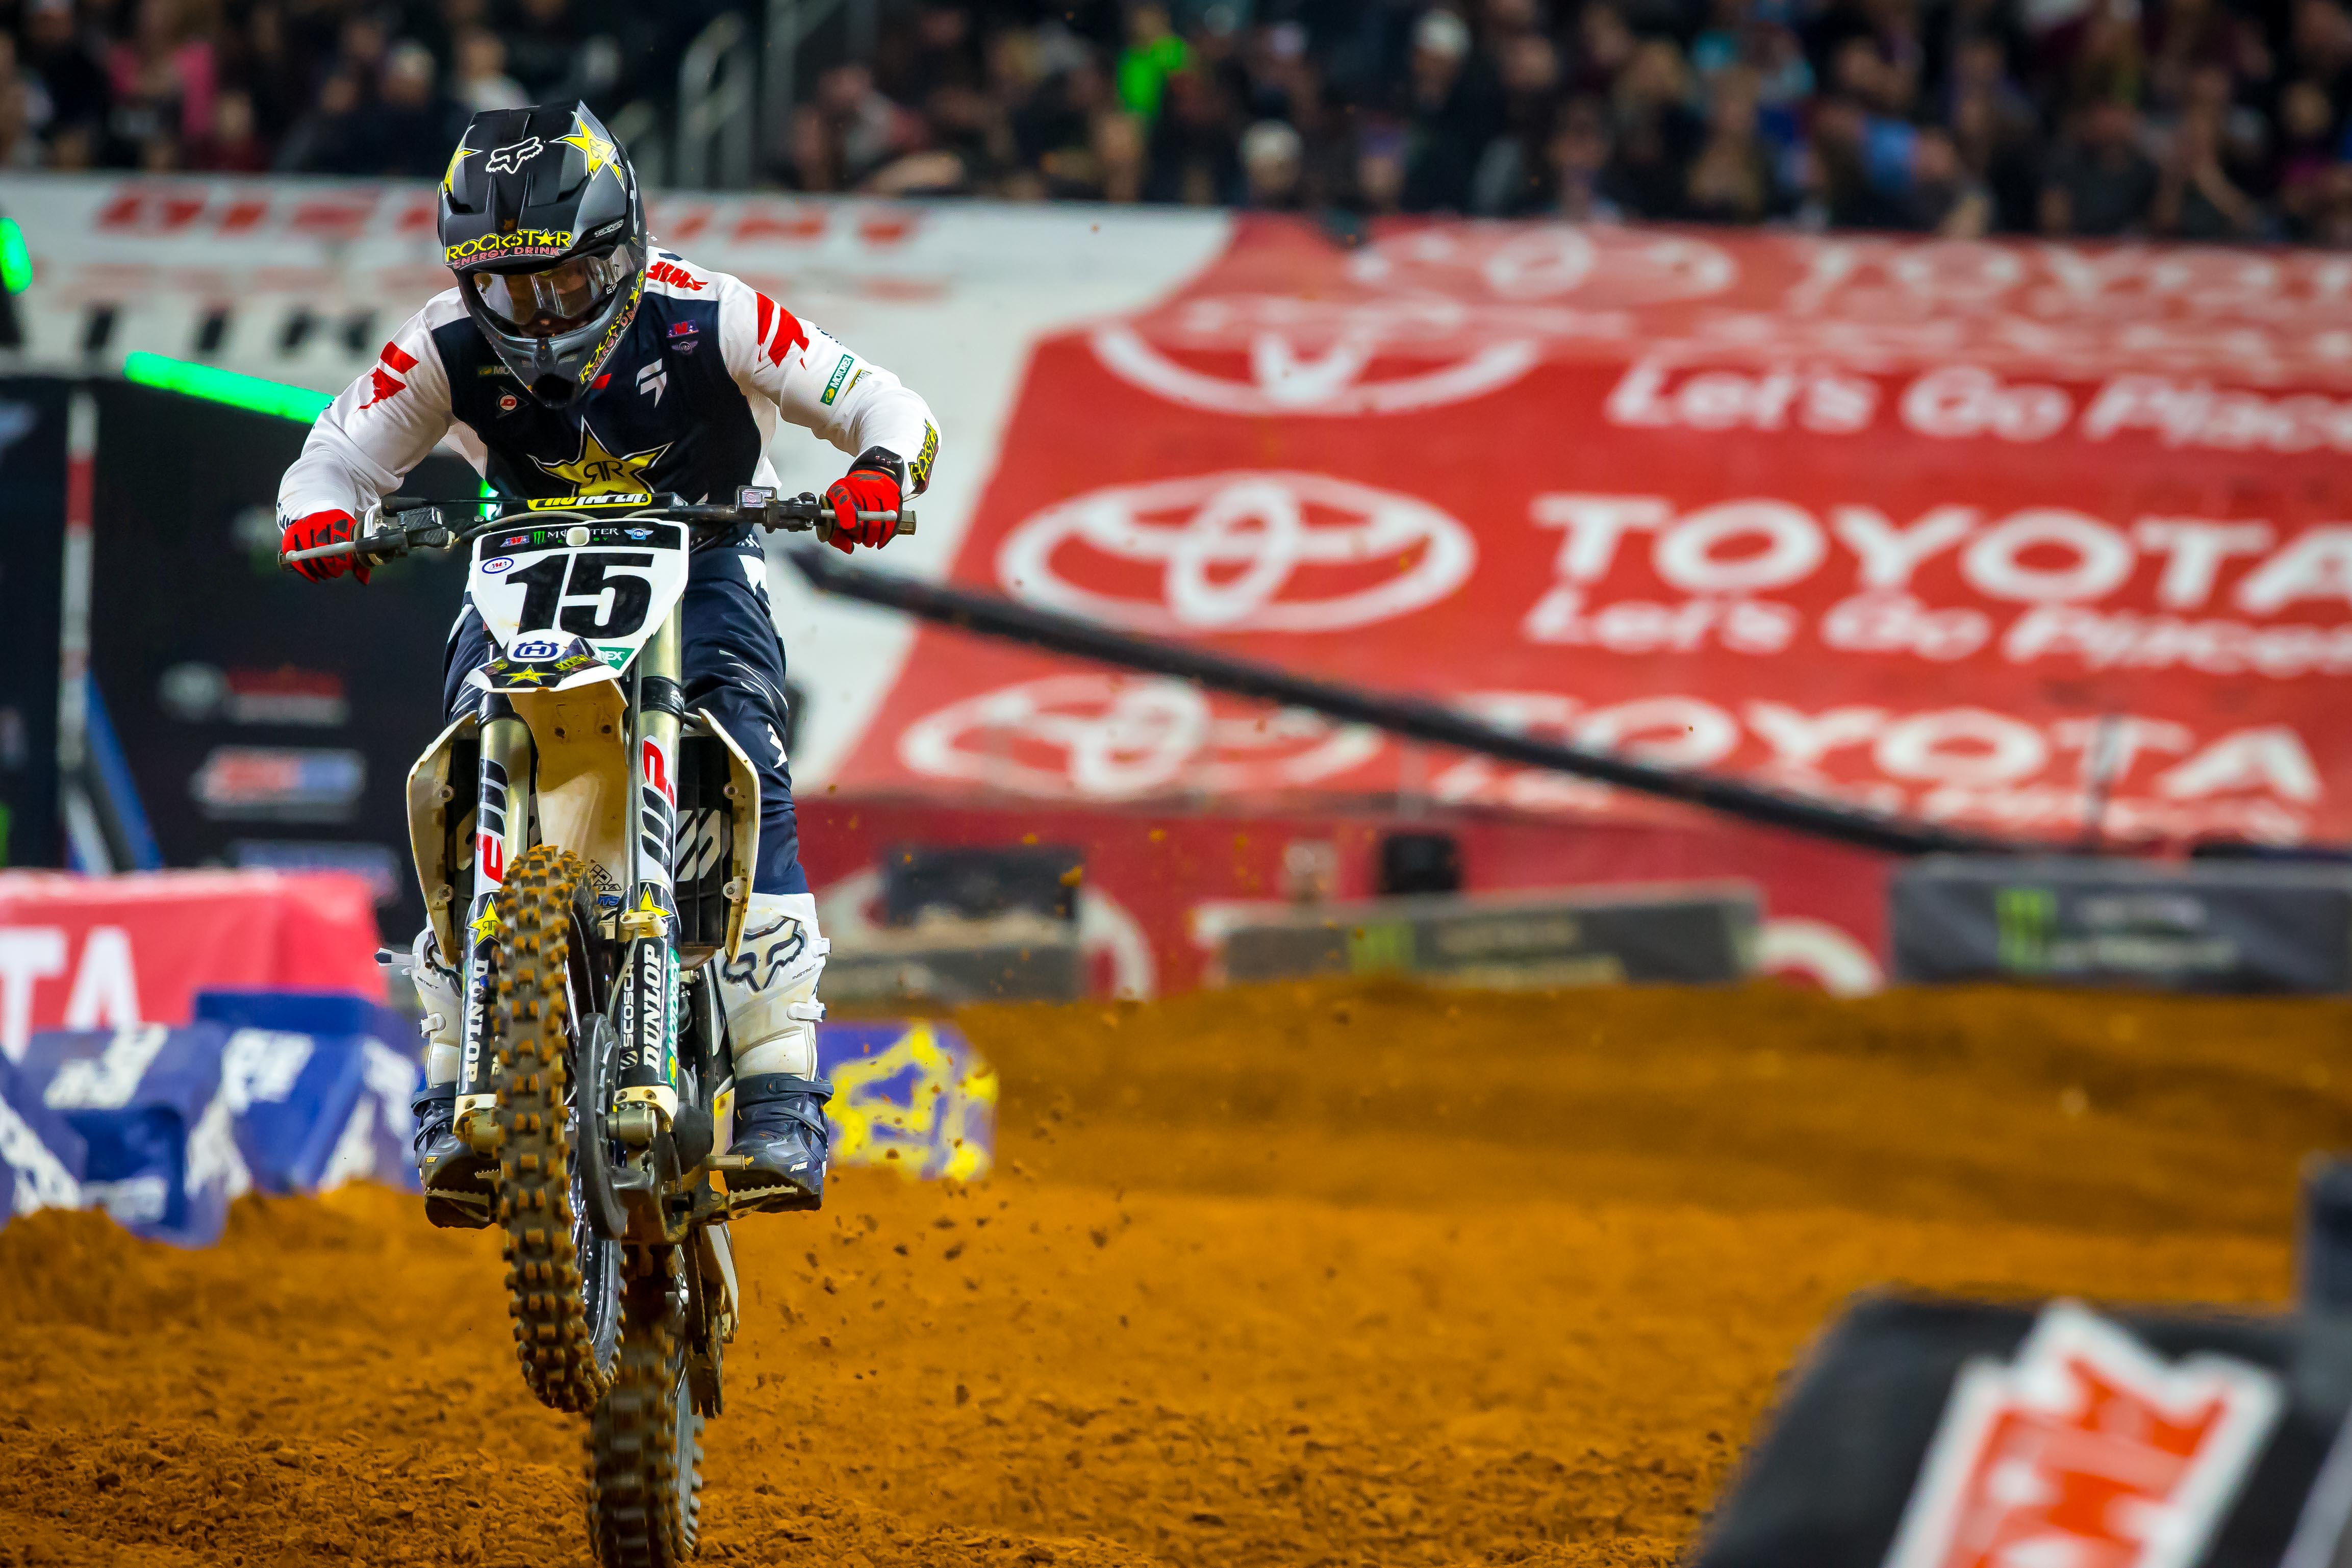 Dean Wilson had a great night in Arlington and earned another top-10 finish